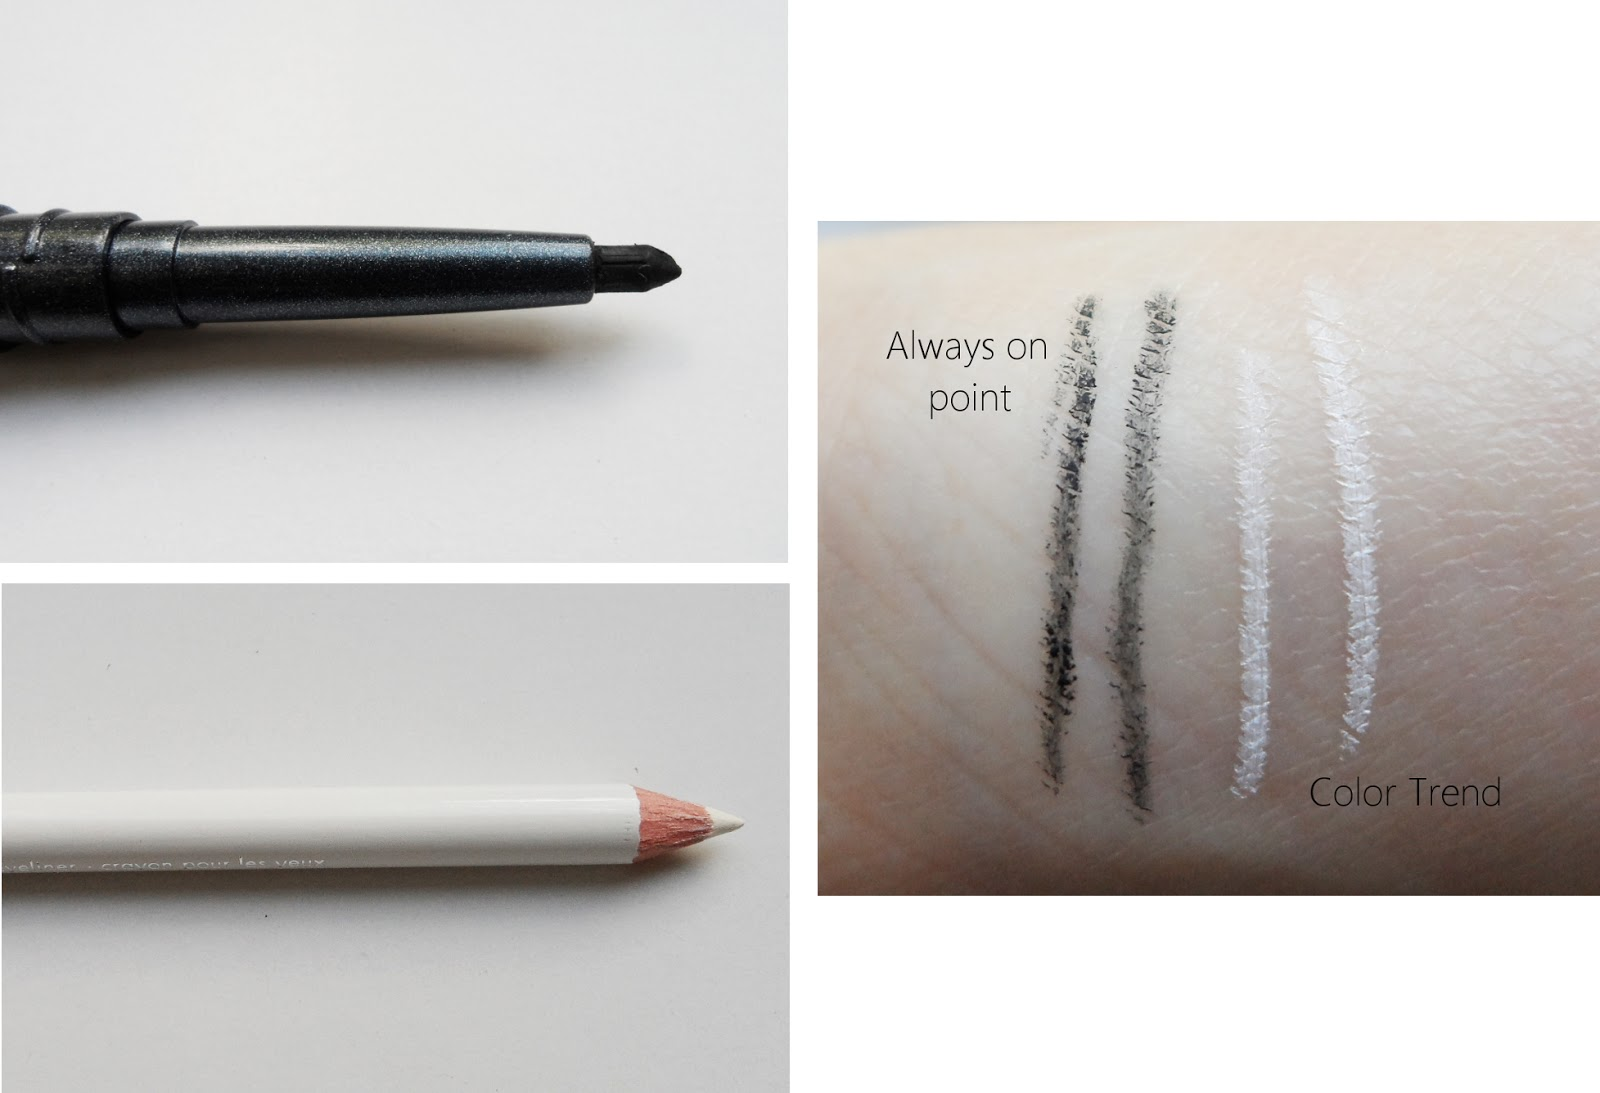 always on point color trend, color trend cosmetics review